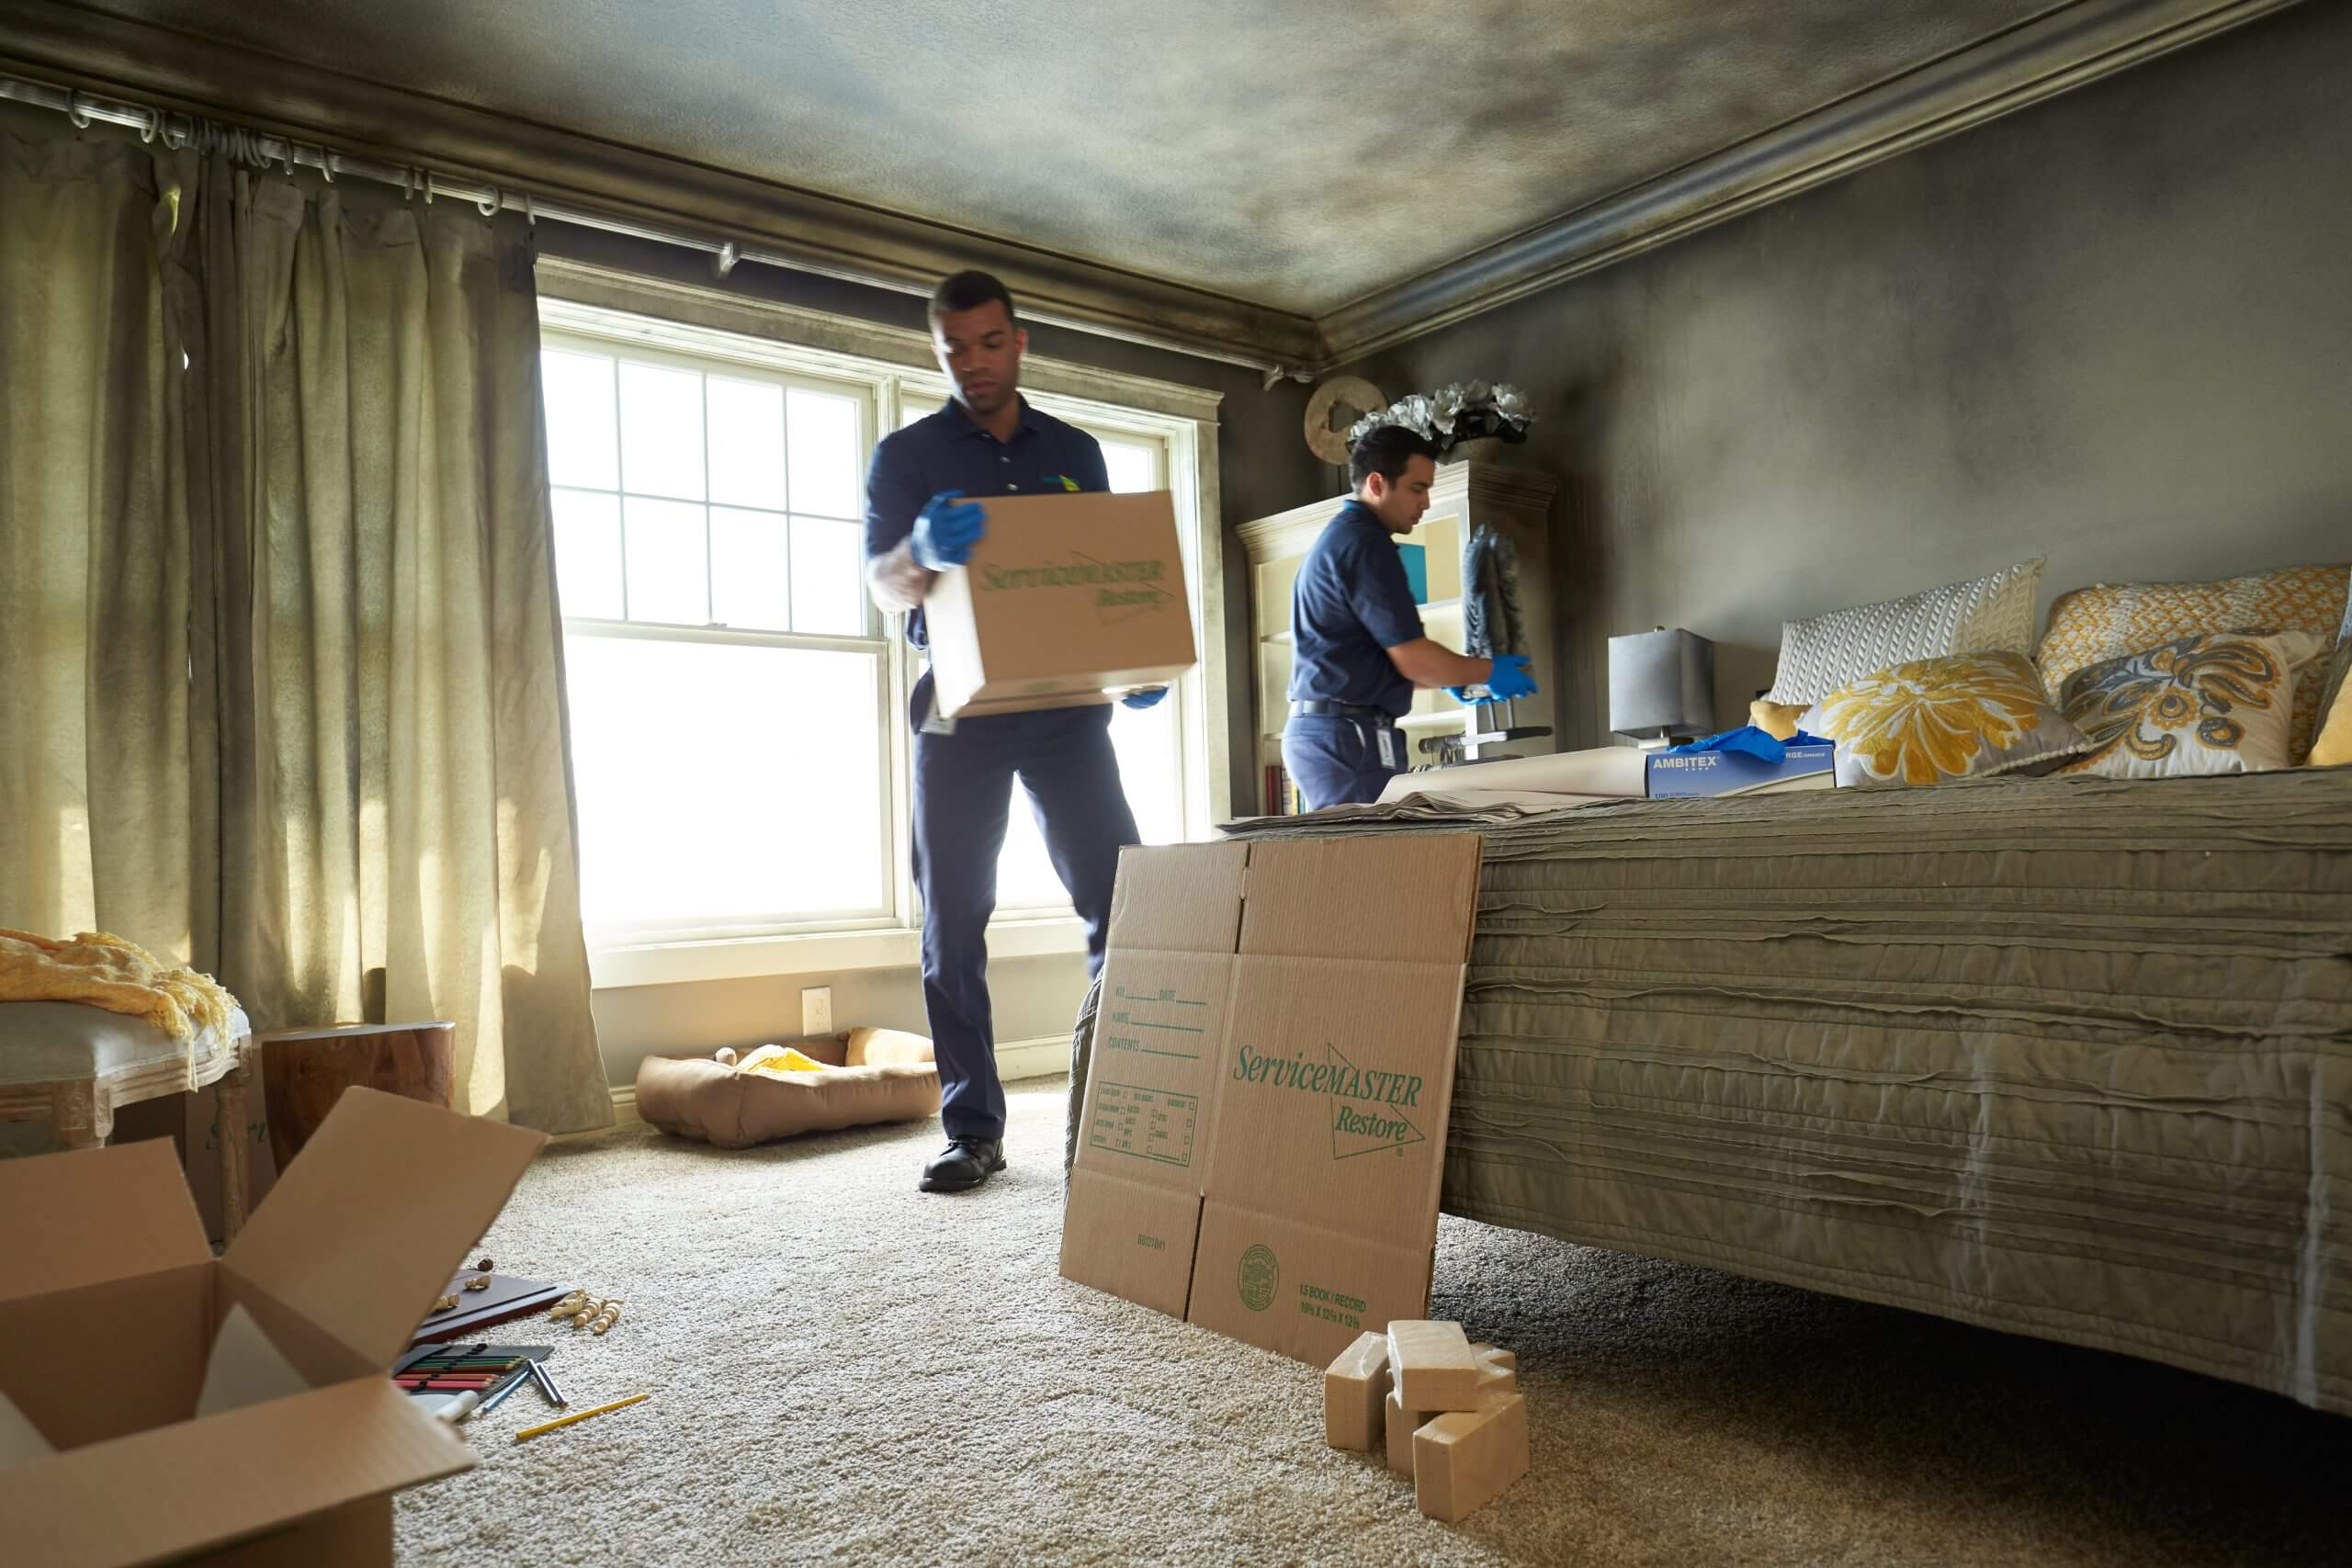 residential-fire-damage-servicemaster-by-bailey (1)